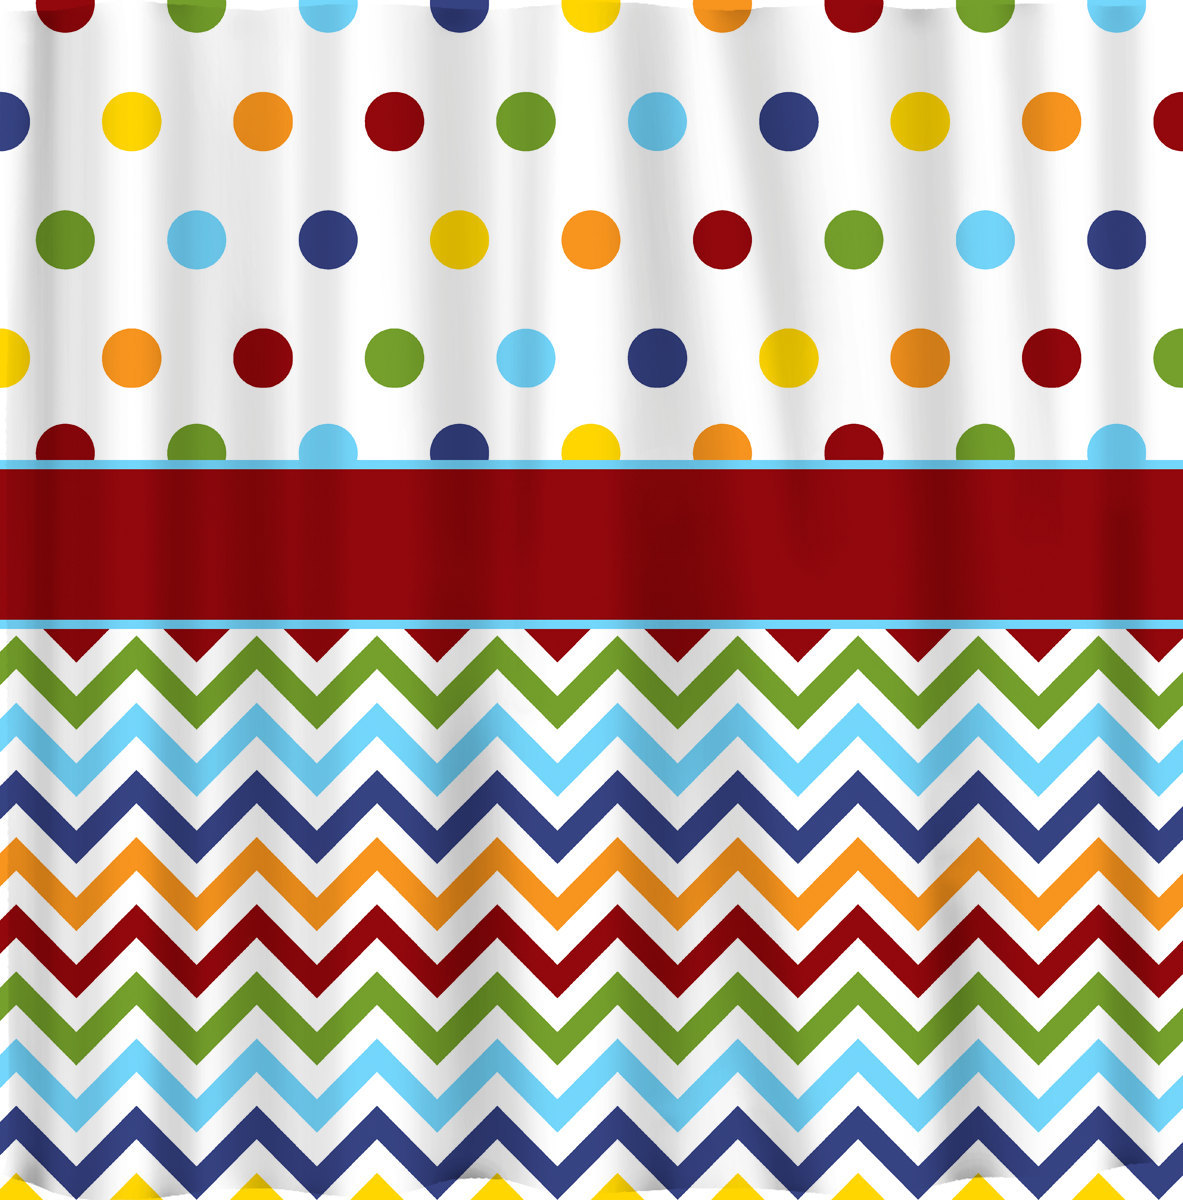 Shower Curtain - Multi color Dots and Chevron - Any colors of your choice image 2